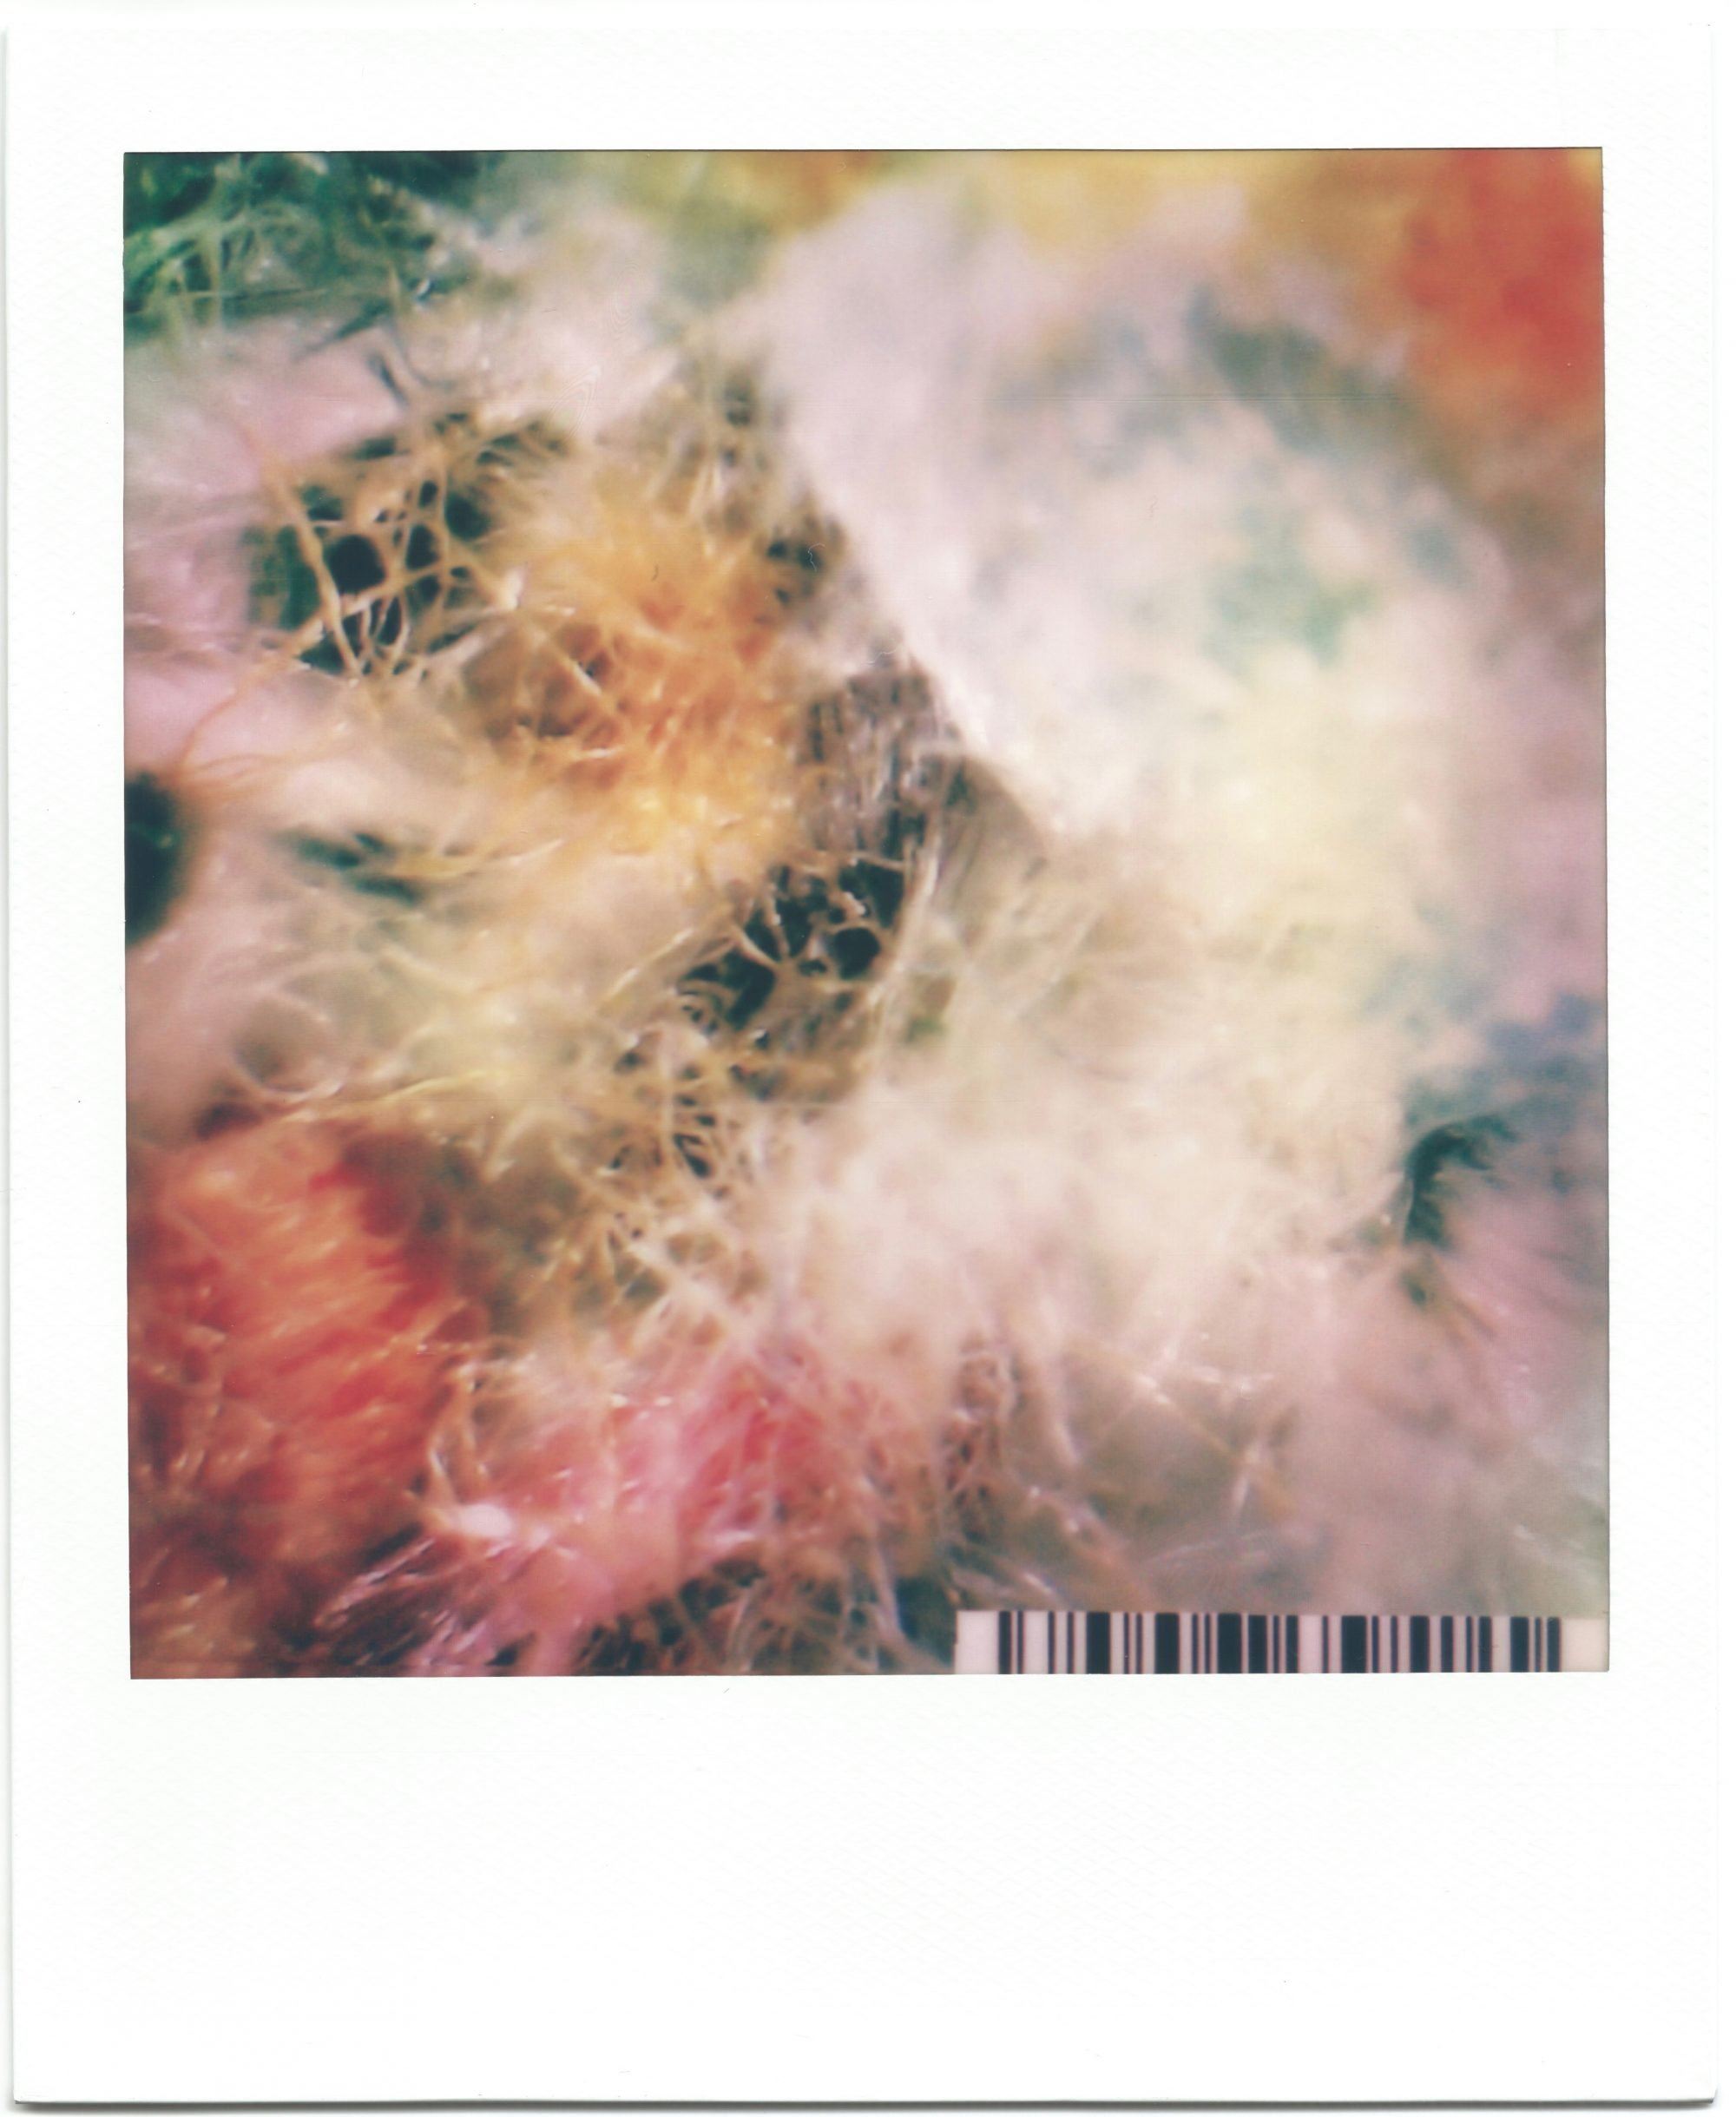 In a white polaroid print frame, is an image of highly magnified textile fibres. White, pink and yellow fibres fill the frame with no distinct thread. Green fibres slightly peek through from behind. A small barcode sits in the bottom right corner.